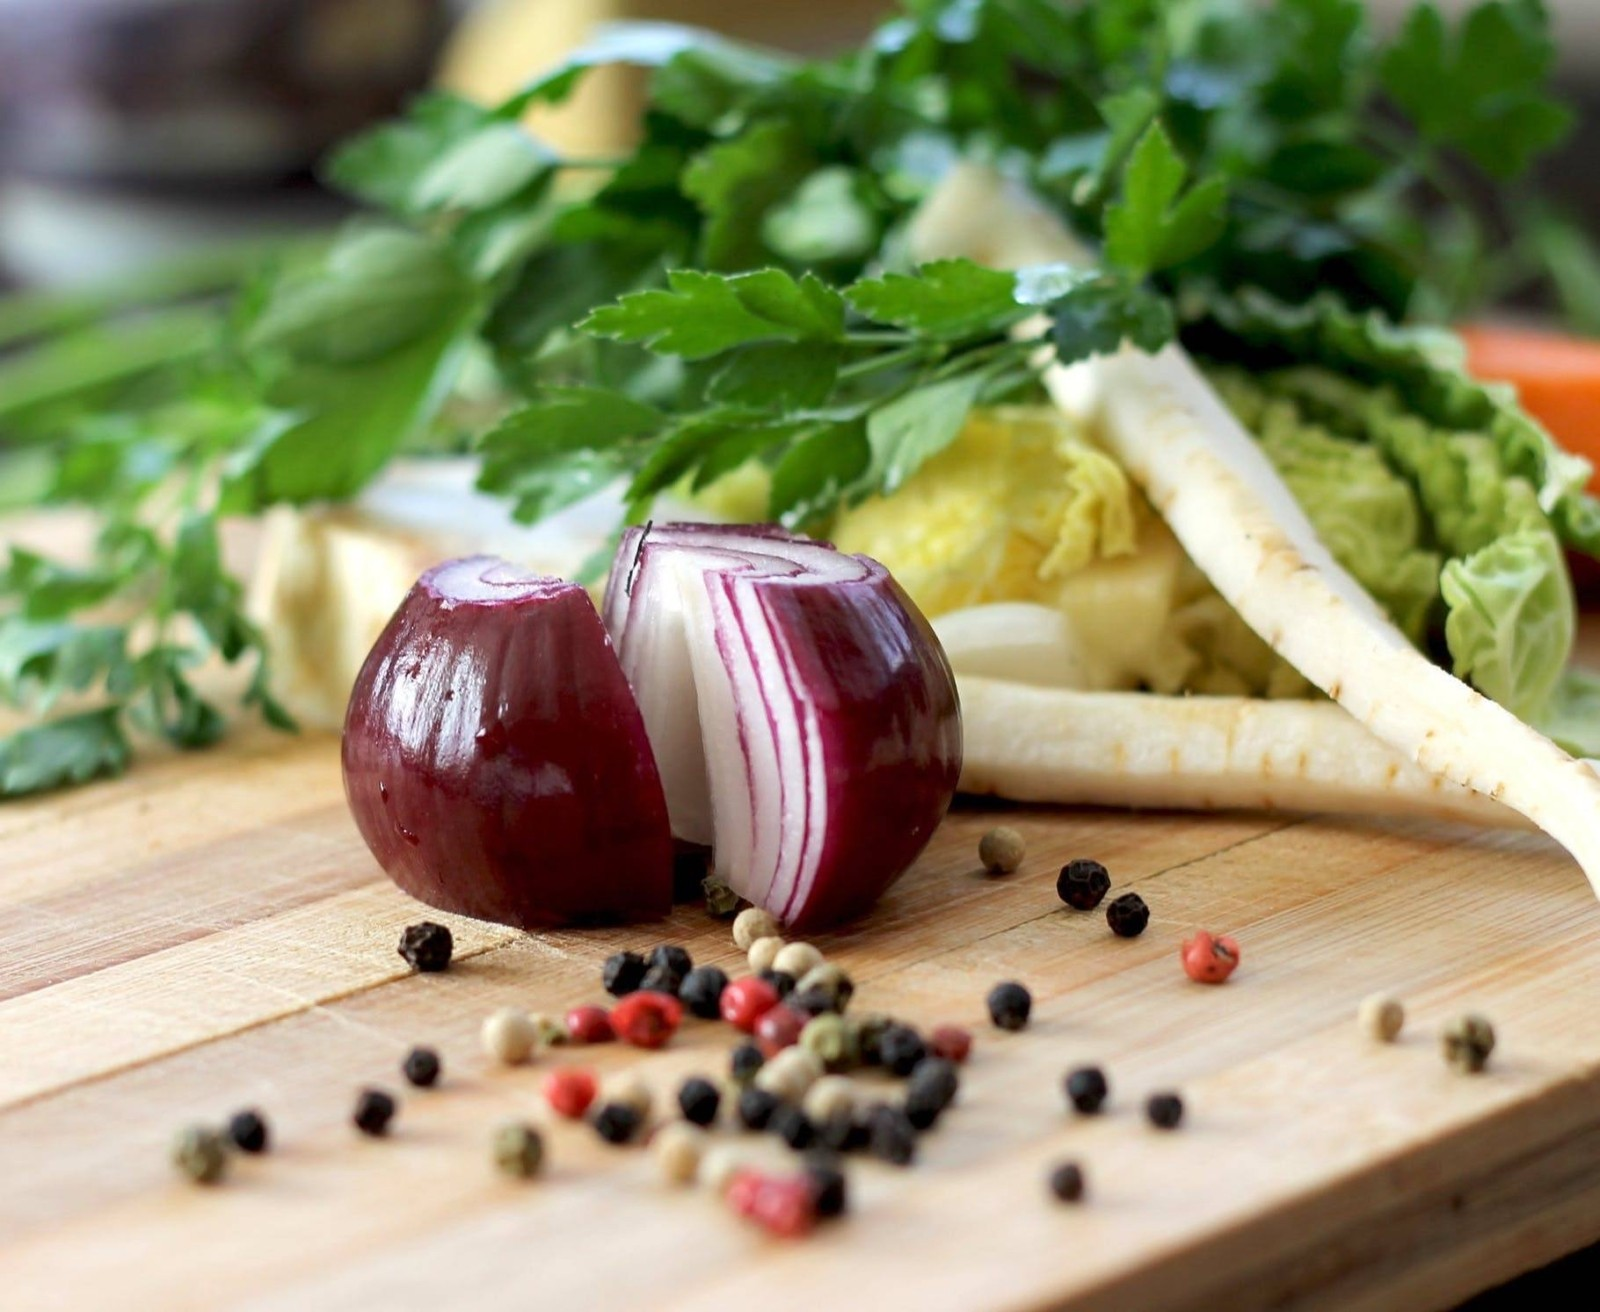 Onions and vegetables on chopping board